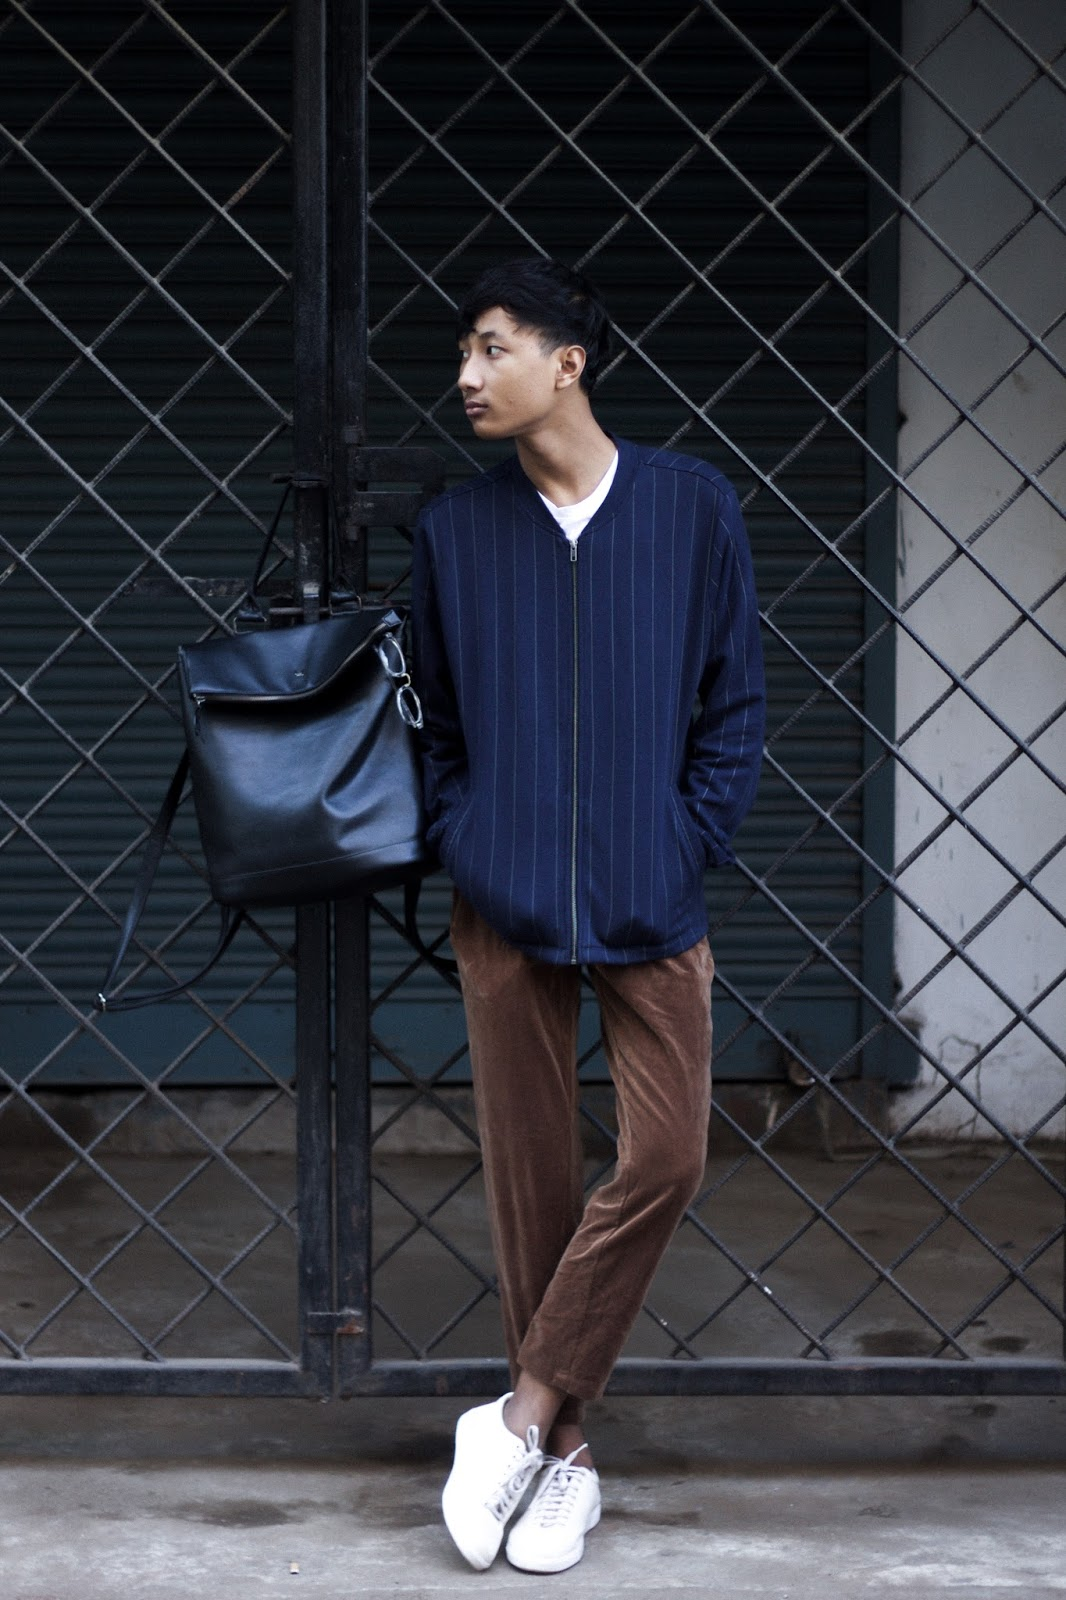 TheQuirkyMinimal by Kangkan Rabha Indian Menswear fashion blog Stripes and Suede outfit post Wearing Koovs Straight Hem Stripe Jacket & white tee, Thrifted suede pants, Berfolk tote backpack & BEONZA White Sneakers